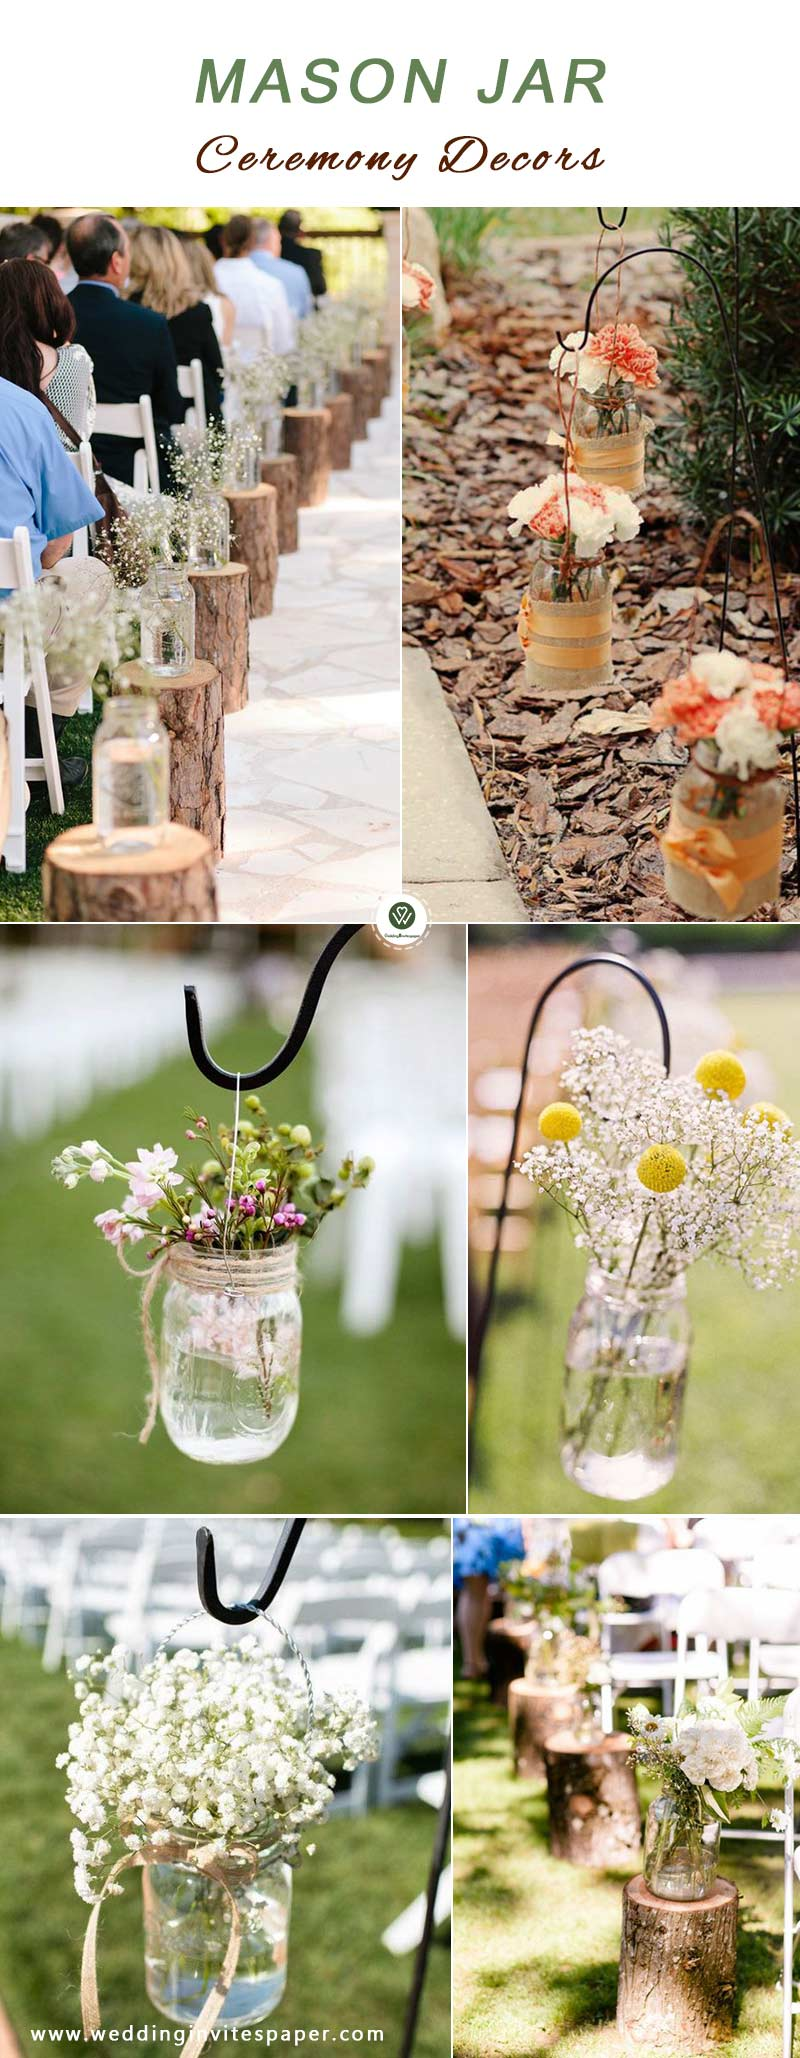 MASON-JAR-Ceremony-Decors.jpg